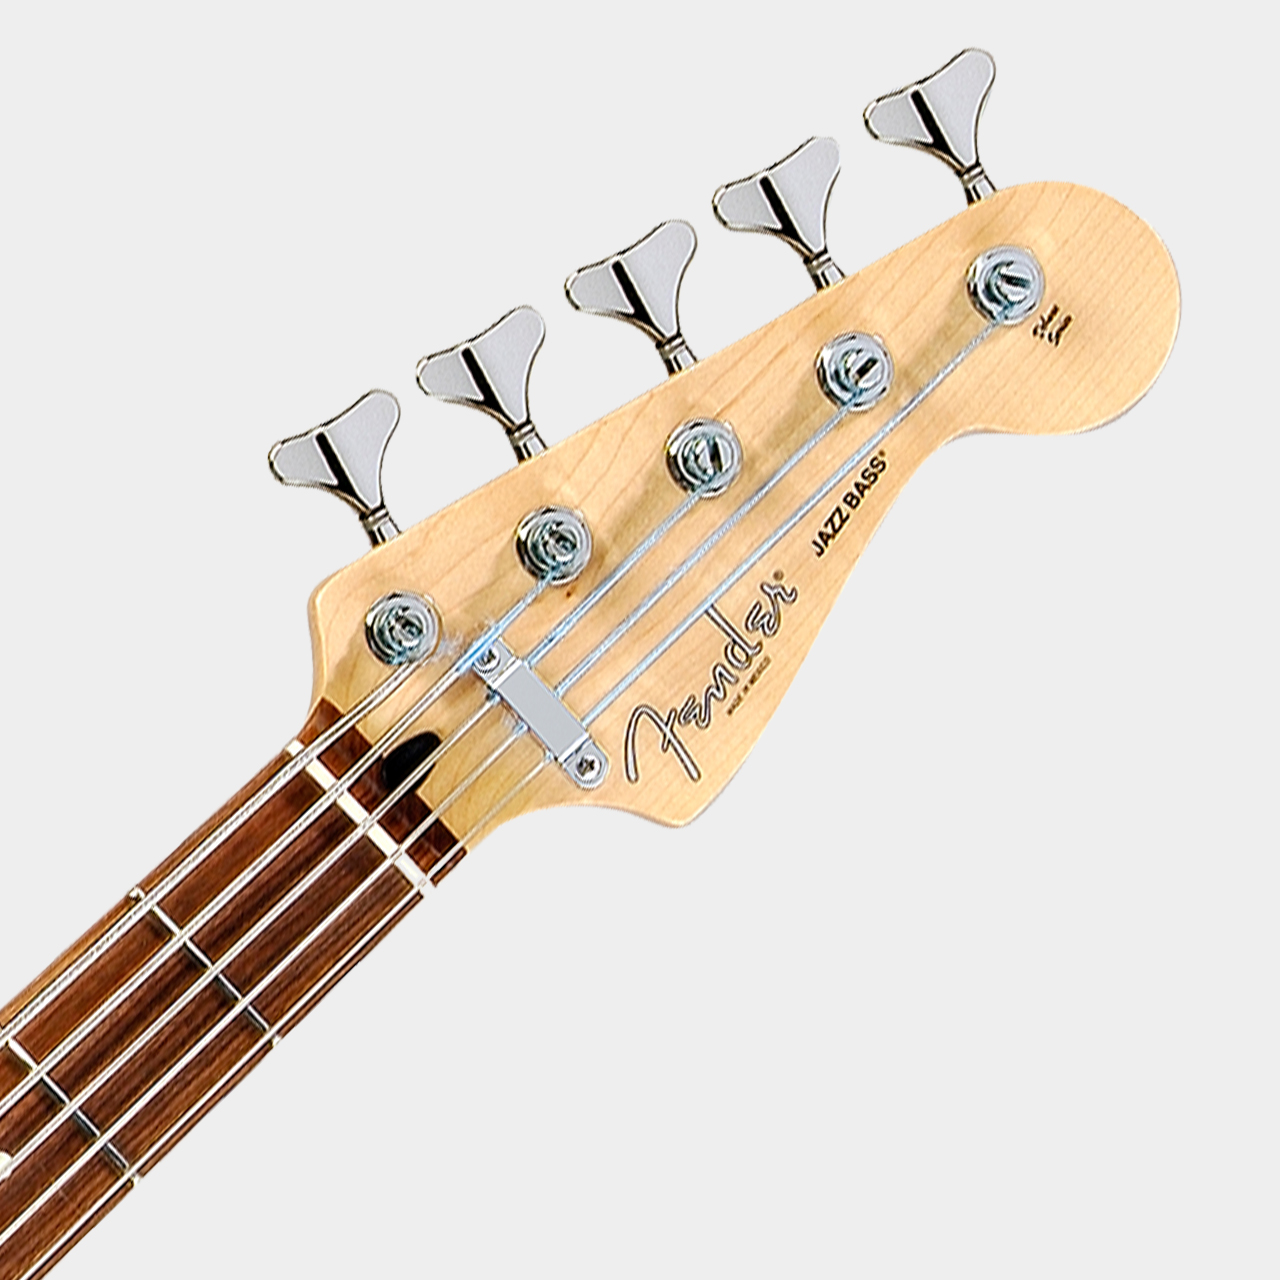 FENDER Deluxe Active Jazz Bass V Vintage White Headstock Detail